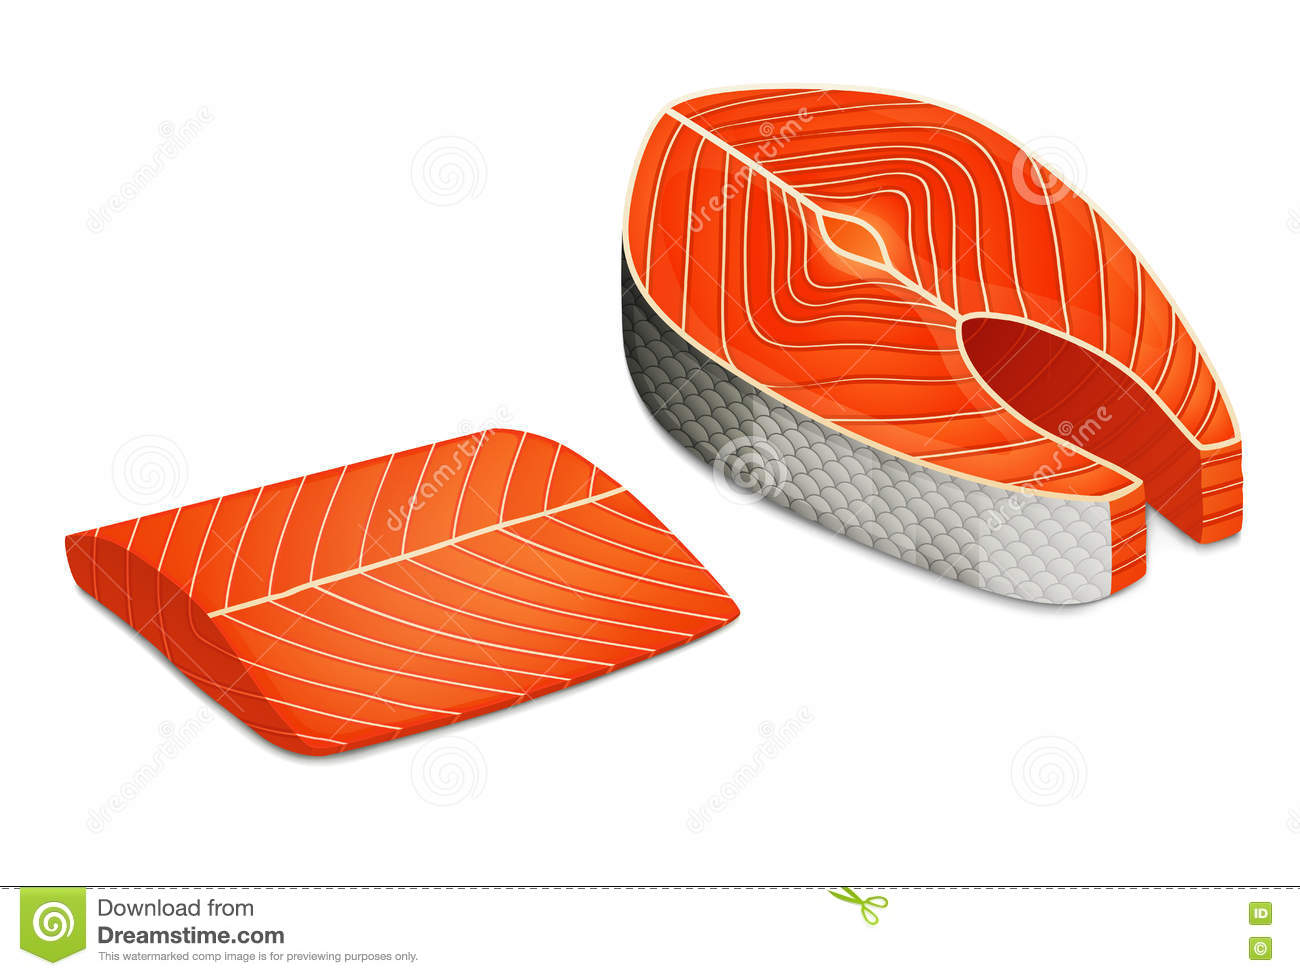 Piece Of Salmon Steak, Fillet Of Red Fish. Stock Vector.